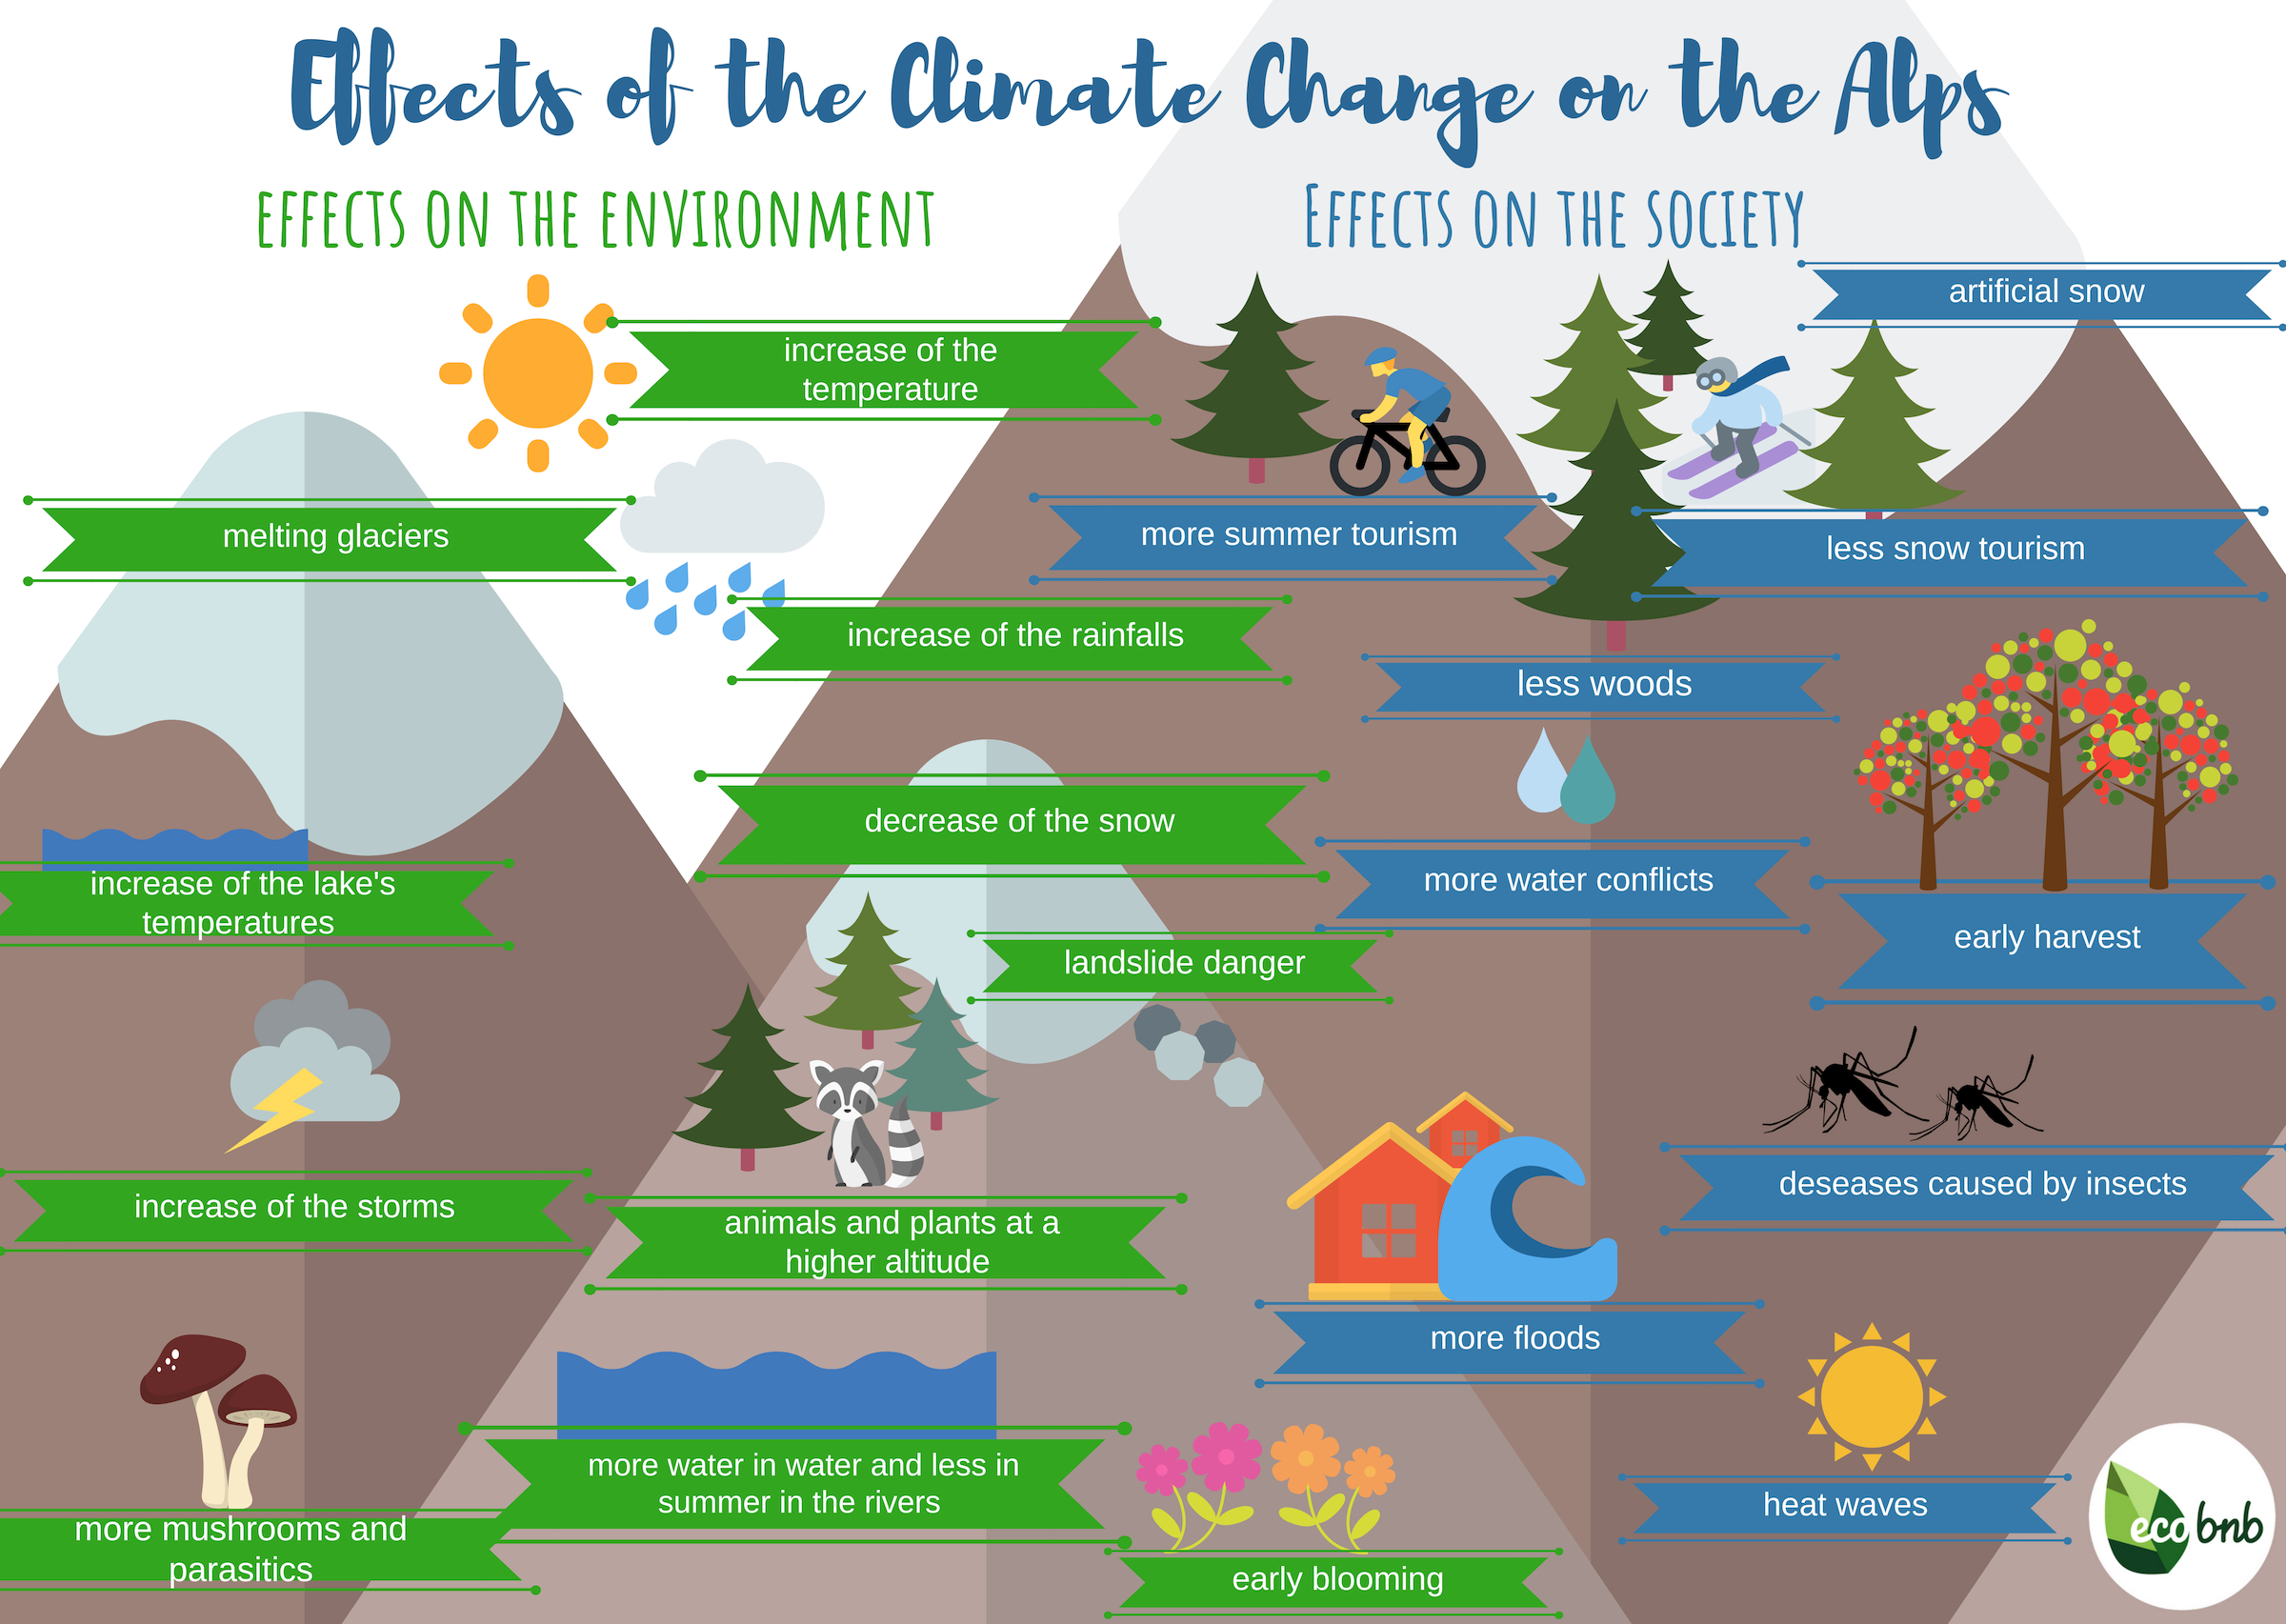 How the climate change will affect the economy and the alpine environment